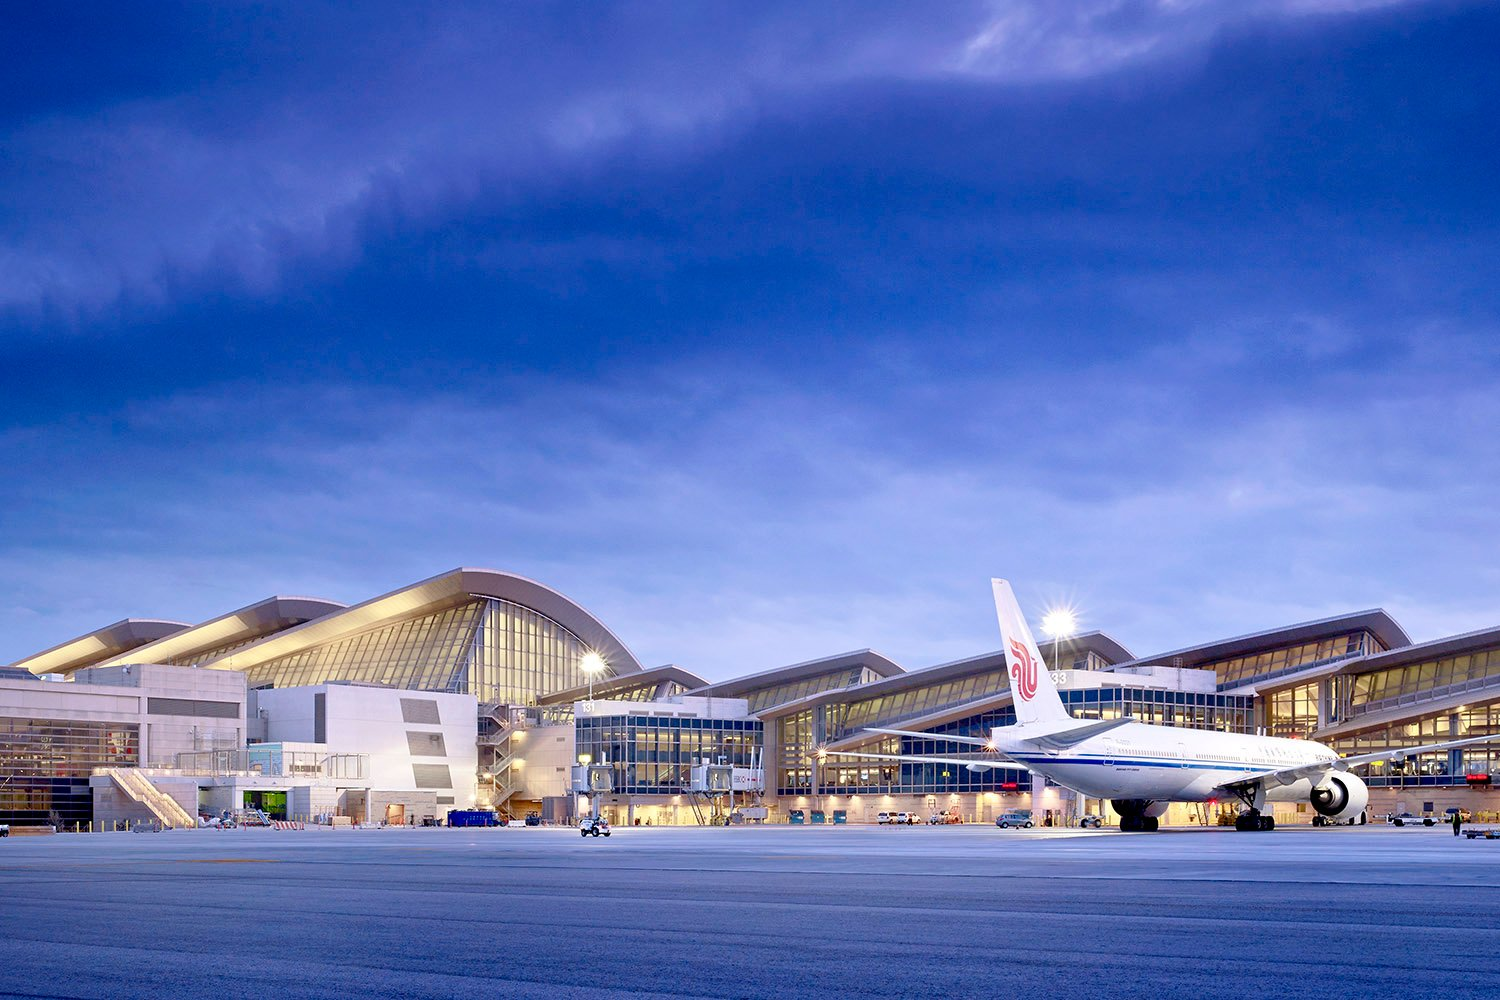 Airside view of the terminal's North Concourse Nick Merrick © Hedrich Blessing